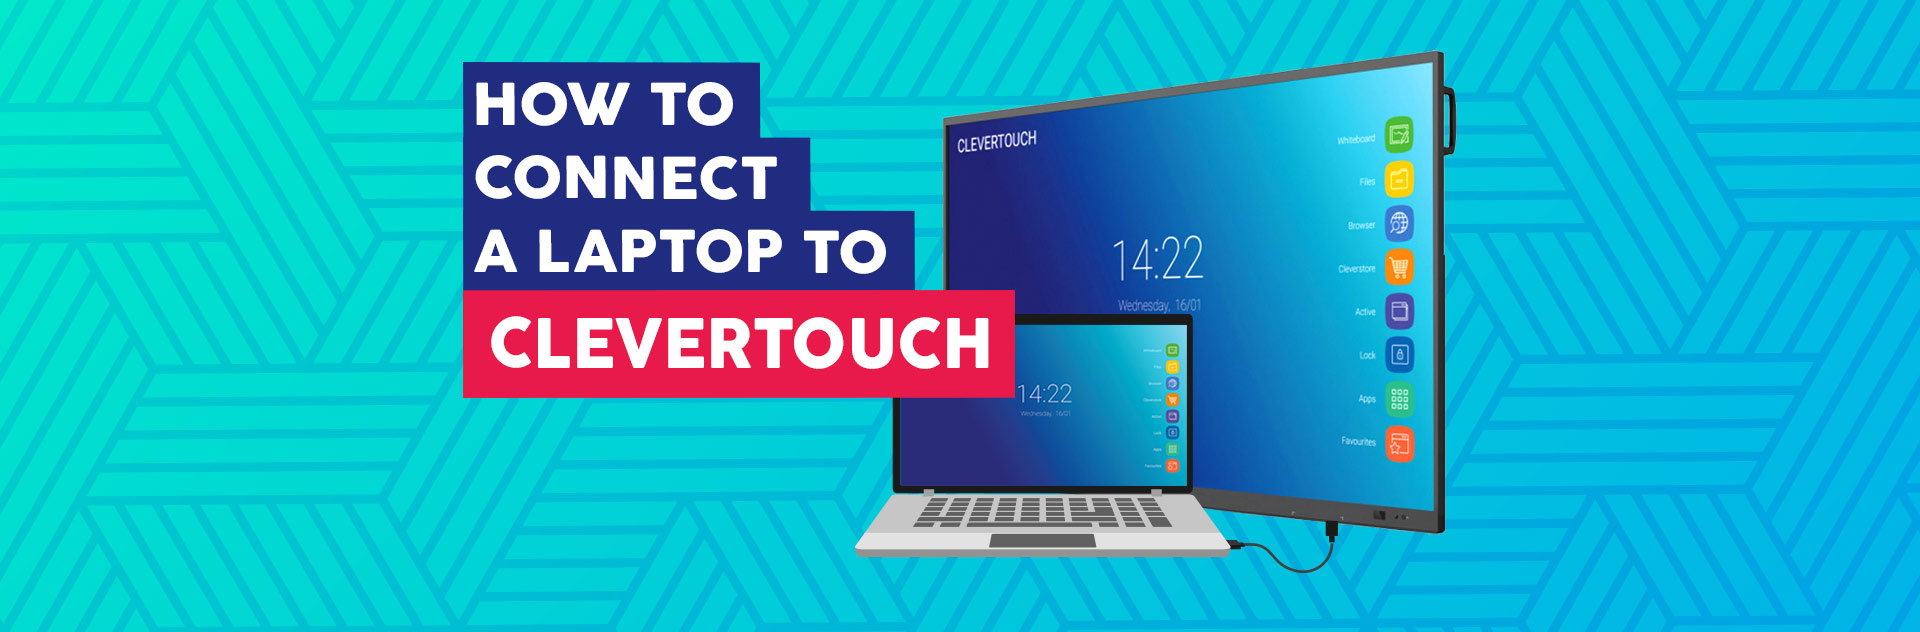 How Connect Laptop Clevertouch - Interactive